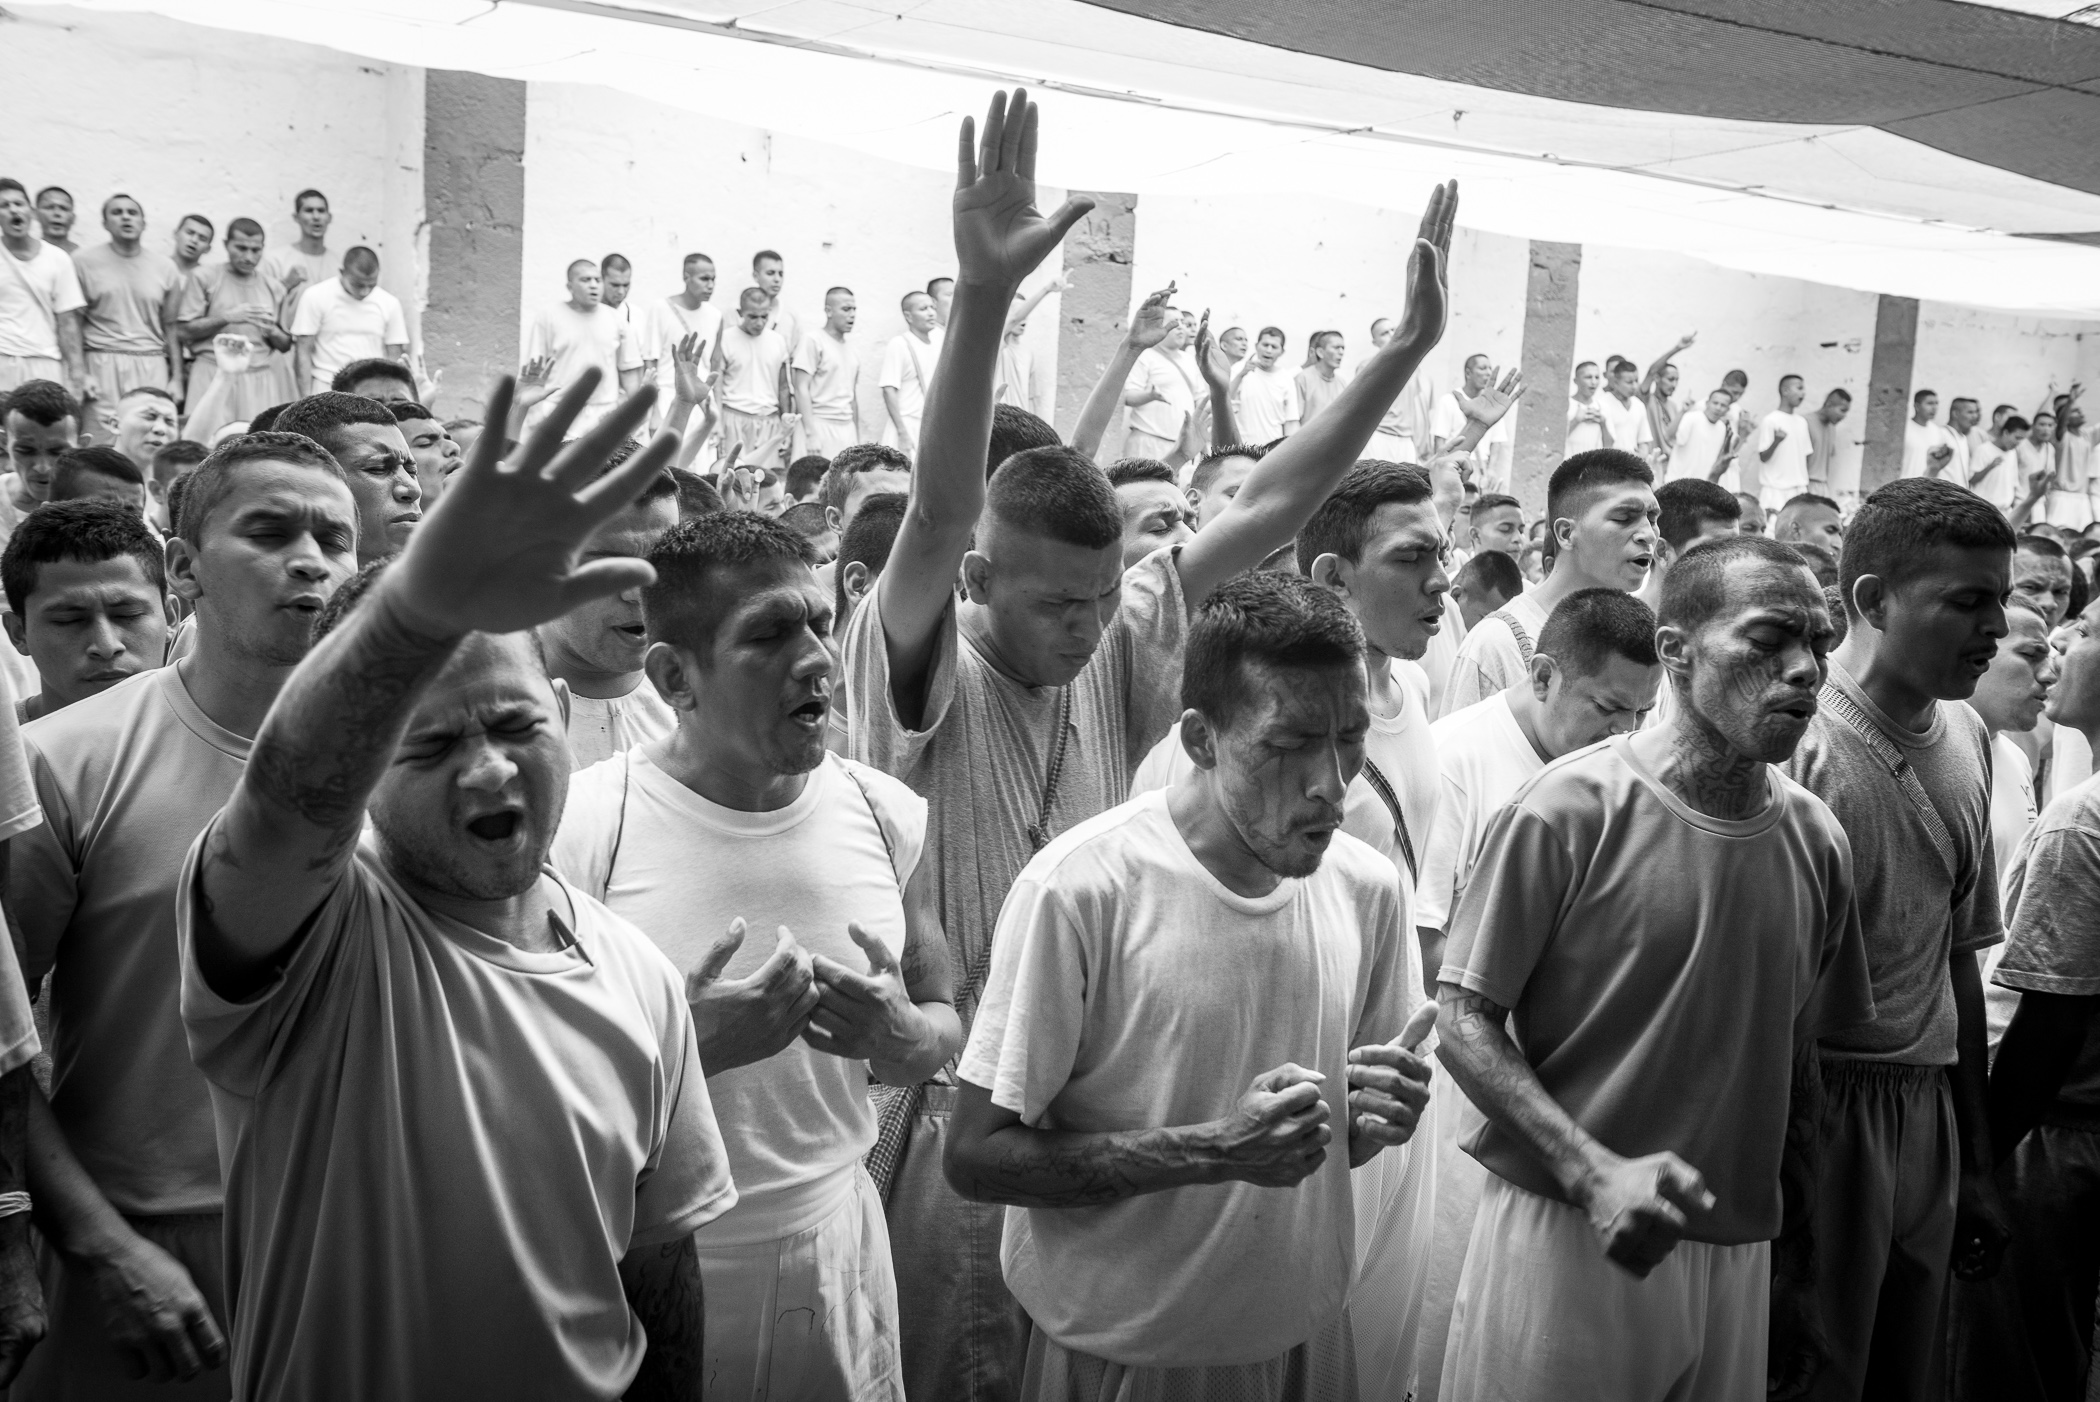 The worship of the Strong Tower church starts at the yards 1, 2 and 3 of La Gotera jail. The inmates are dancing and singing. The Strong Tower church was created few time ago, once the Final Trumpet church evangelized all the yards 4, 5 and 6.